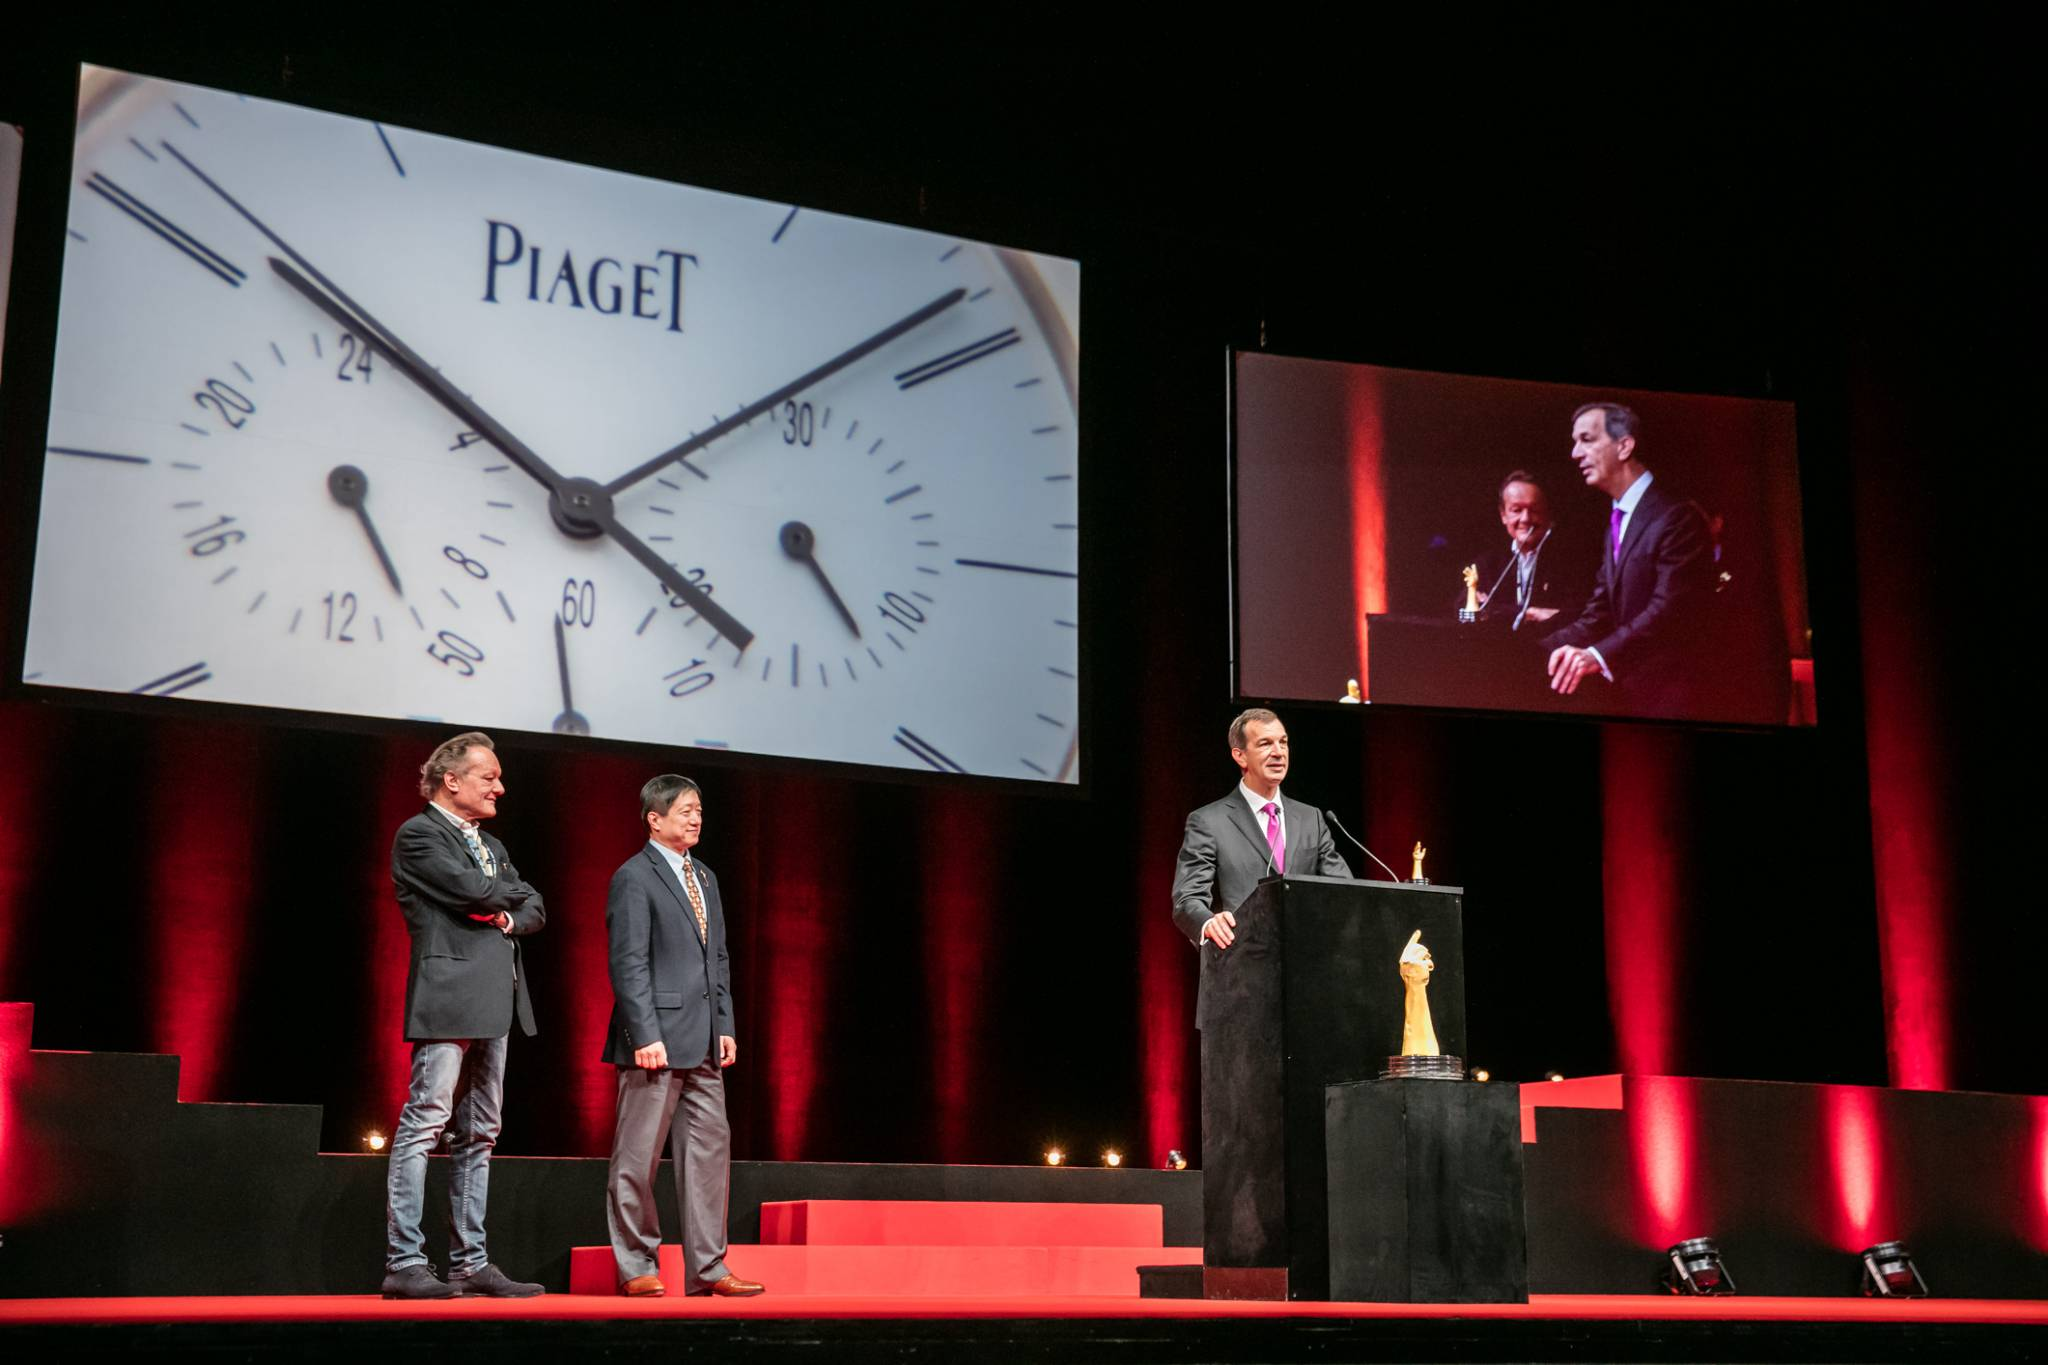 Philippe Léopold-Metzger (CEO of Piaget, winner of the Chronograph Watch Prize 2015 and the Revival Watch Prize 2015), with Philippe Maillard and Zhixiang Ding (jury members)